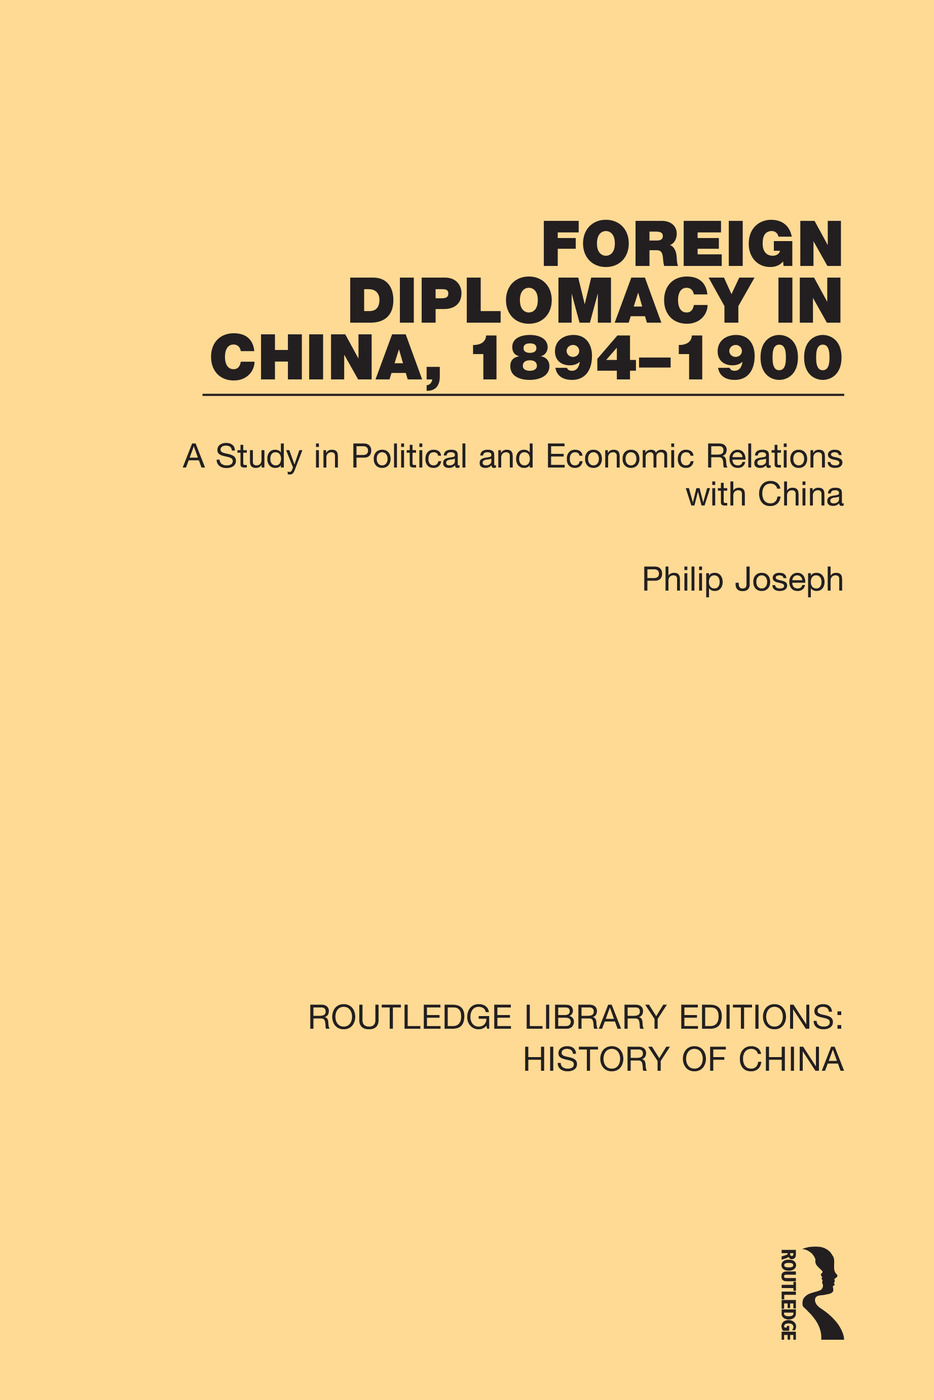 Foreign Diplomacy in China, 1894-1900: A Study in Political and Economic Relations with China book cover